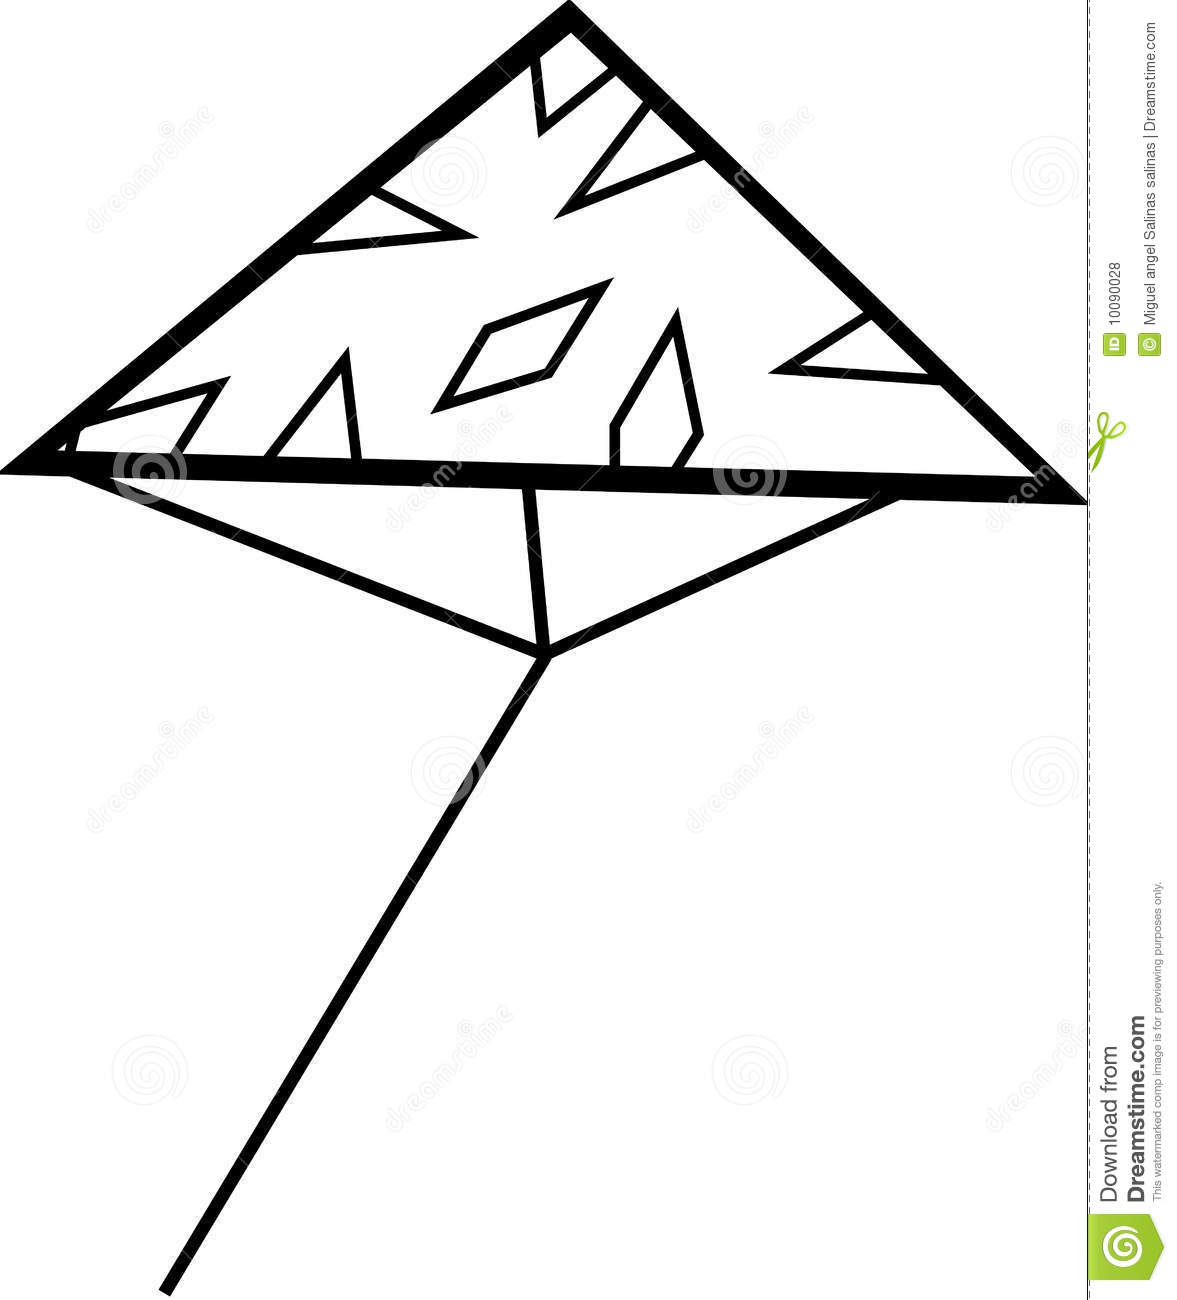 coloring kite black and white clip art windy clipartsco and white kite coloring black